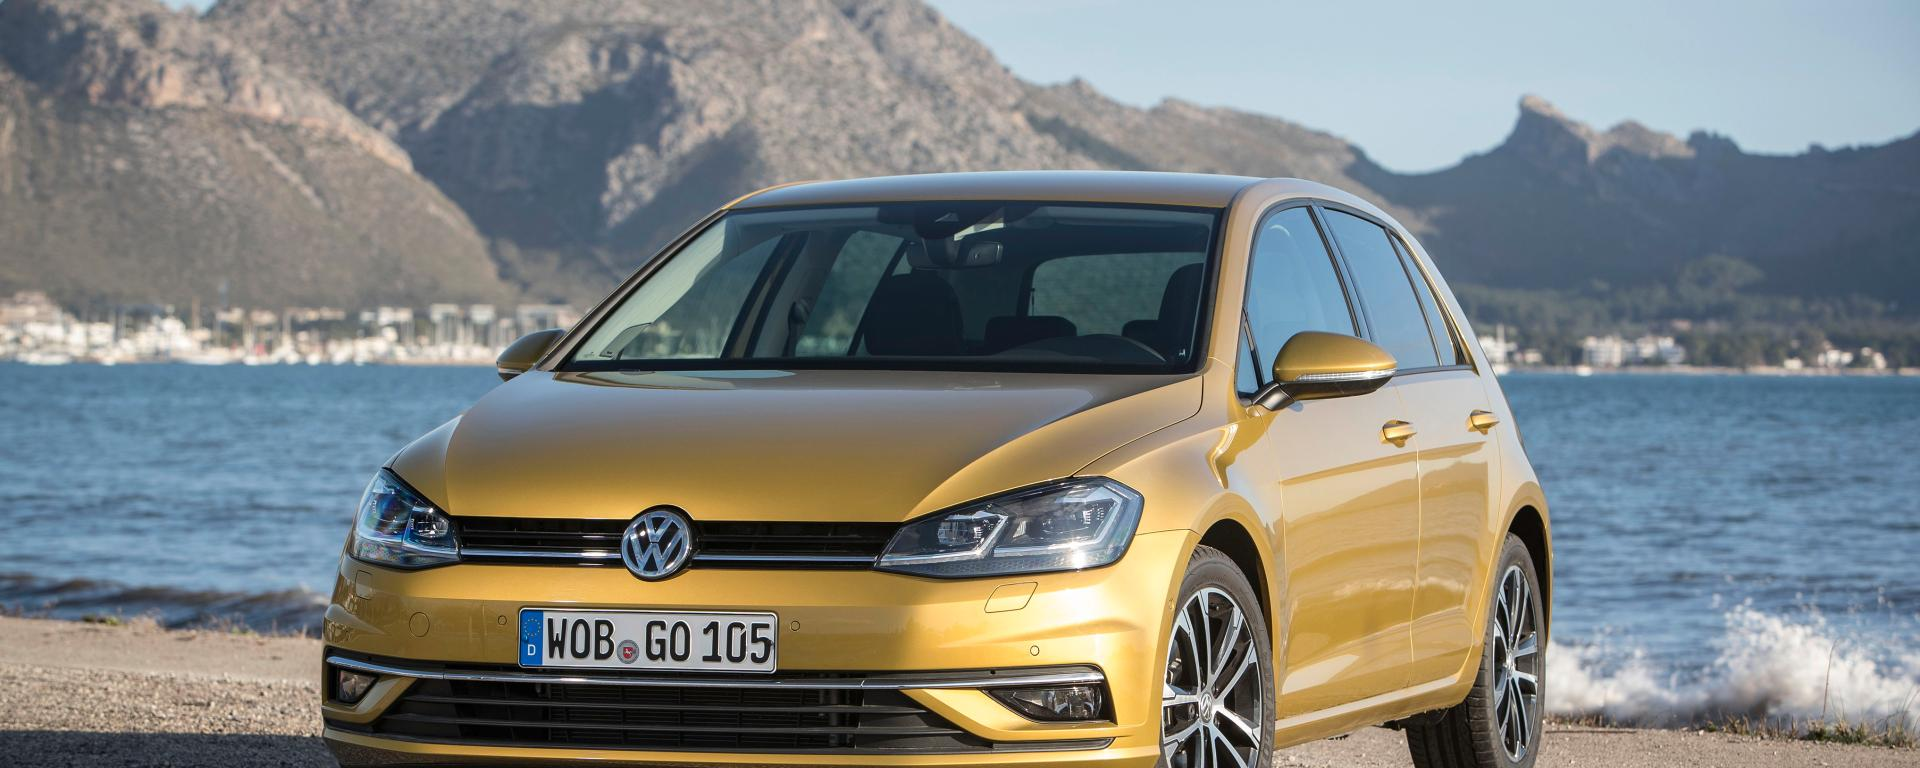 Volkswagen Golf leasen